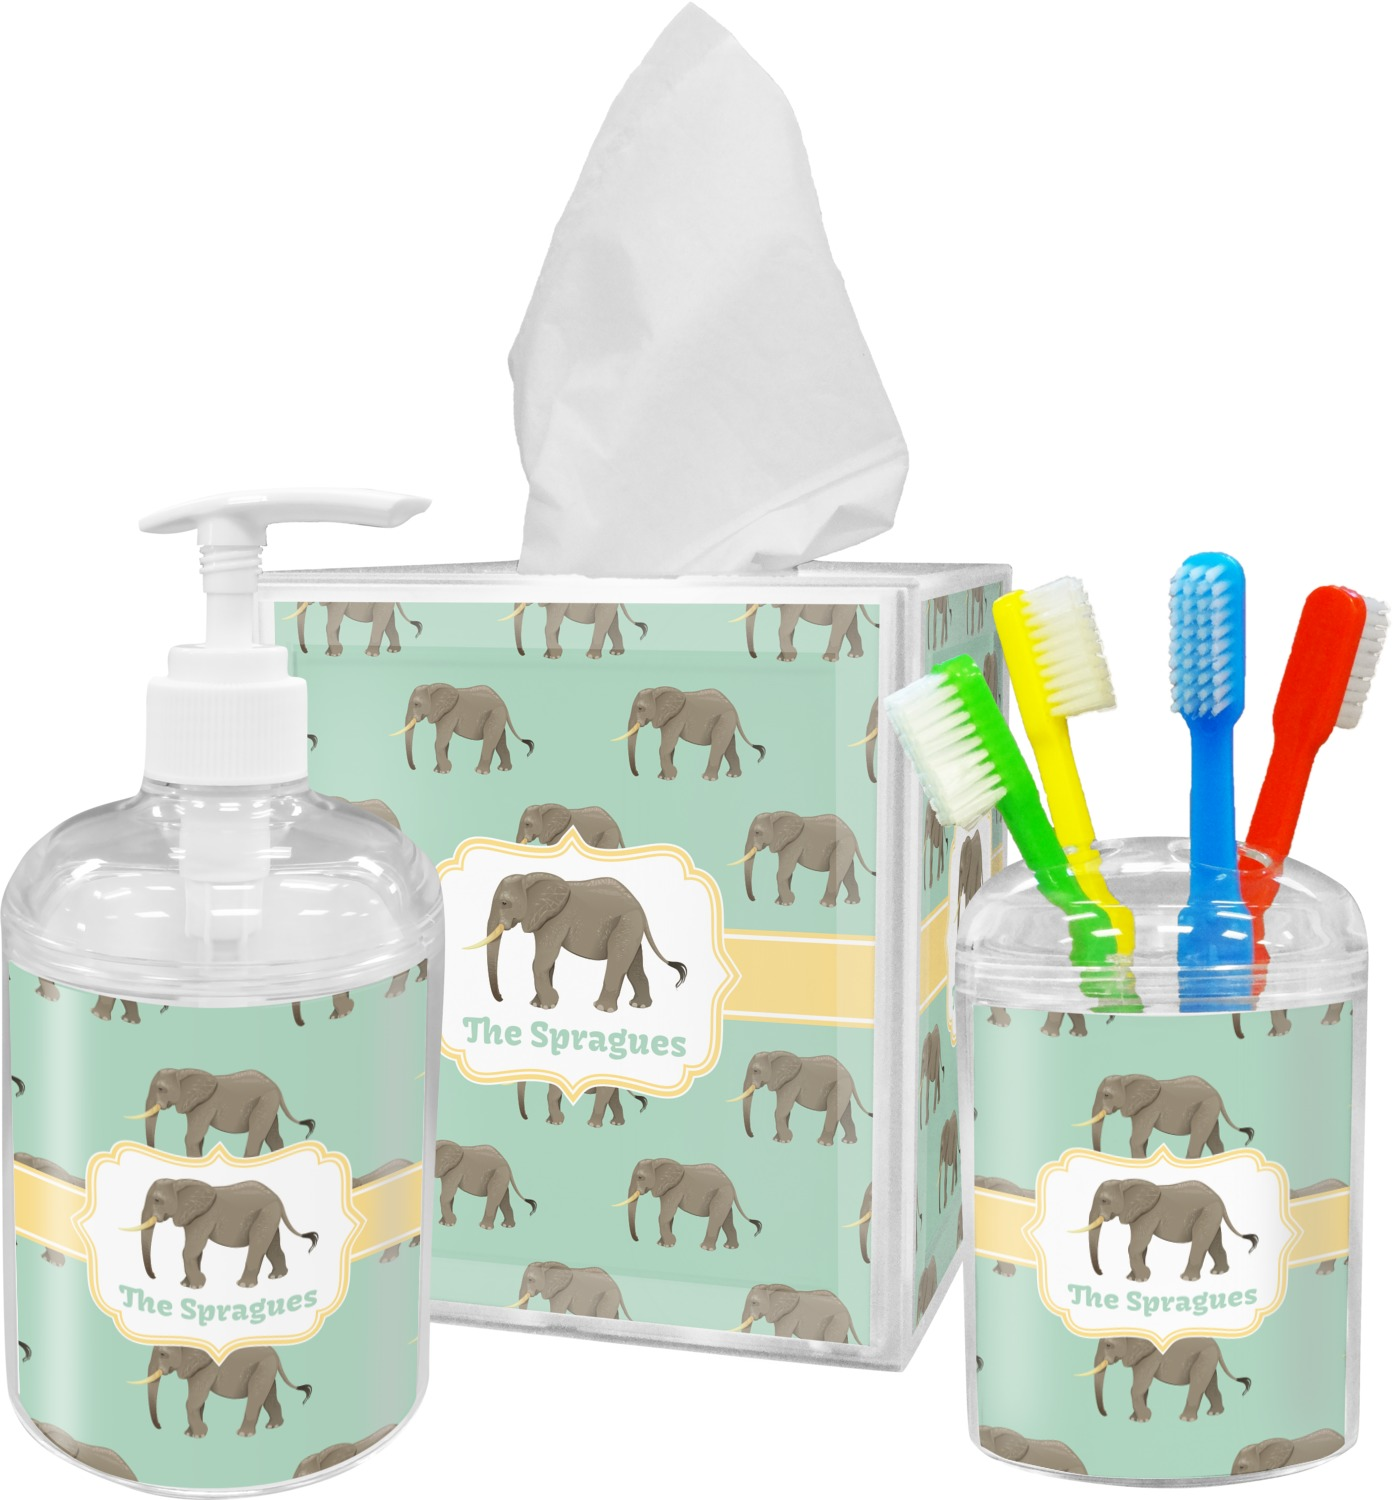 Elephant Bathroom Accessories Set (Personalized) - YouCustomizeIt